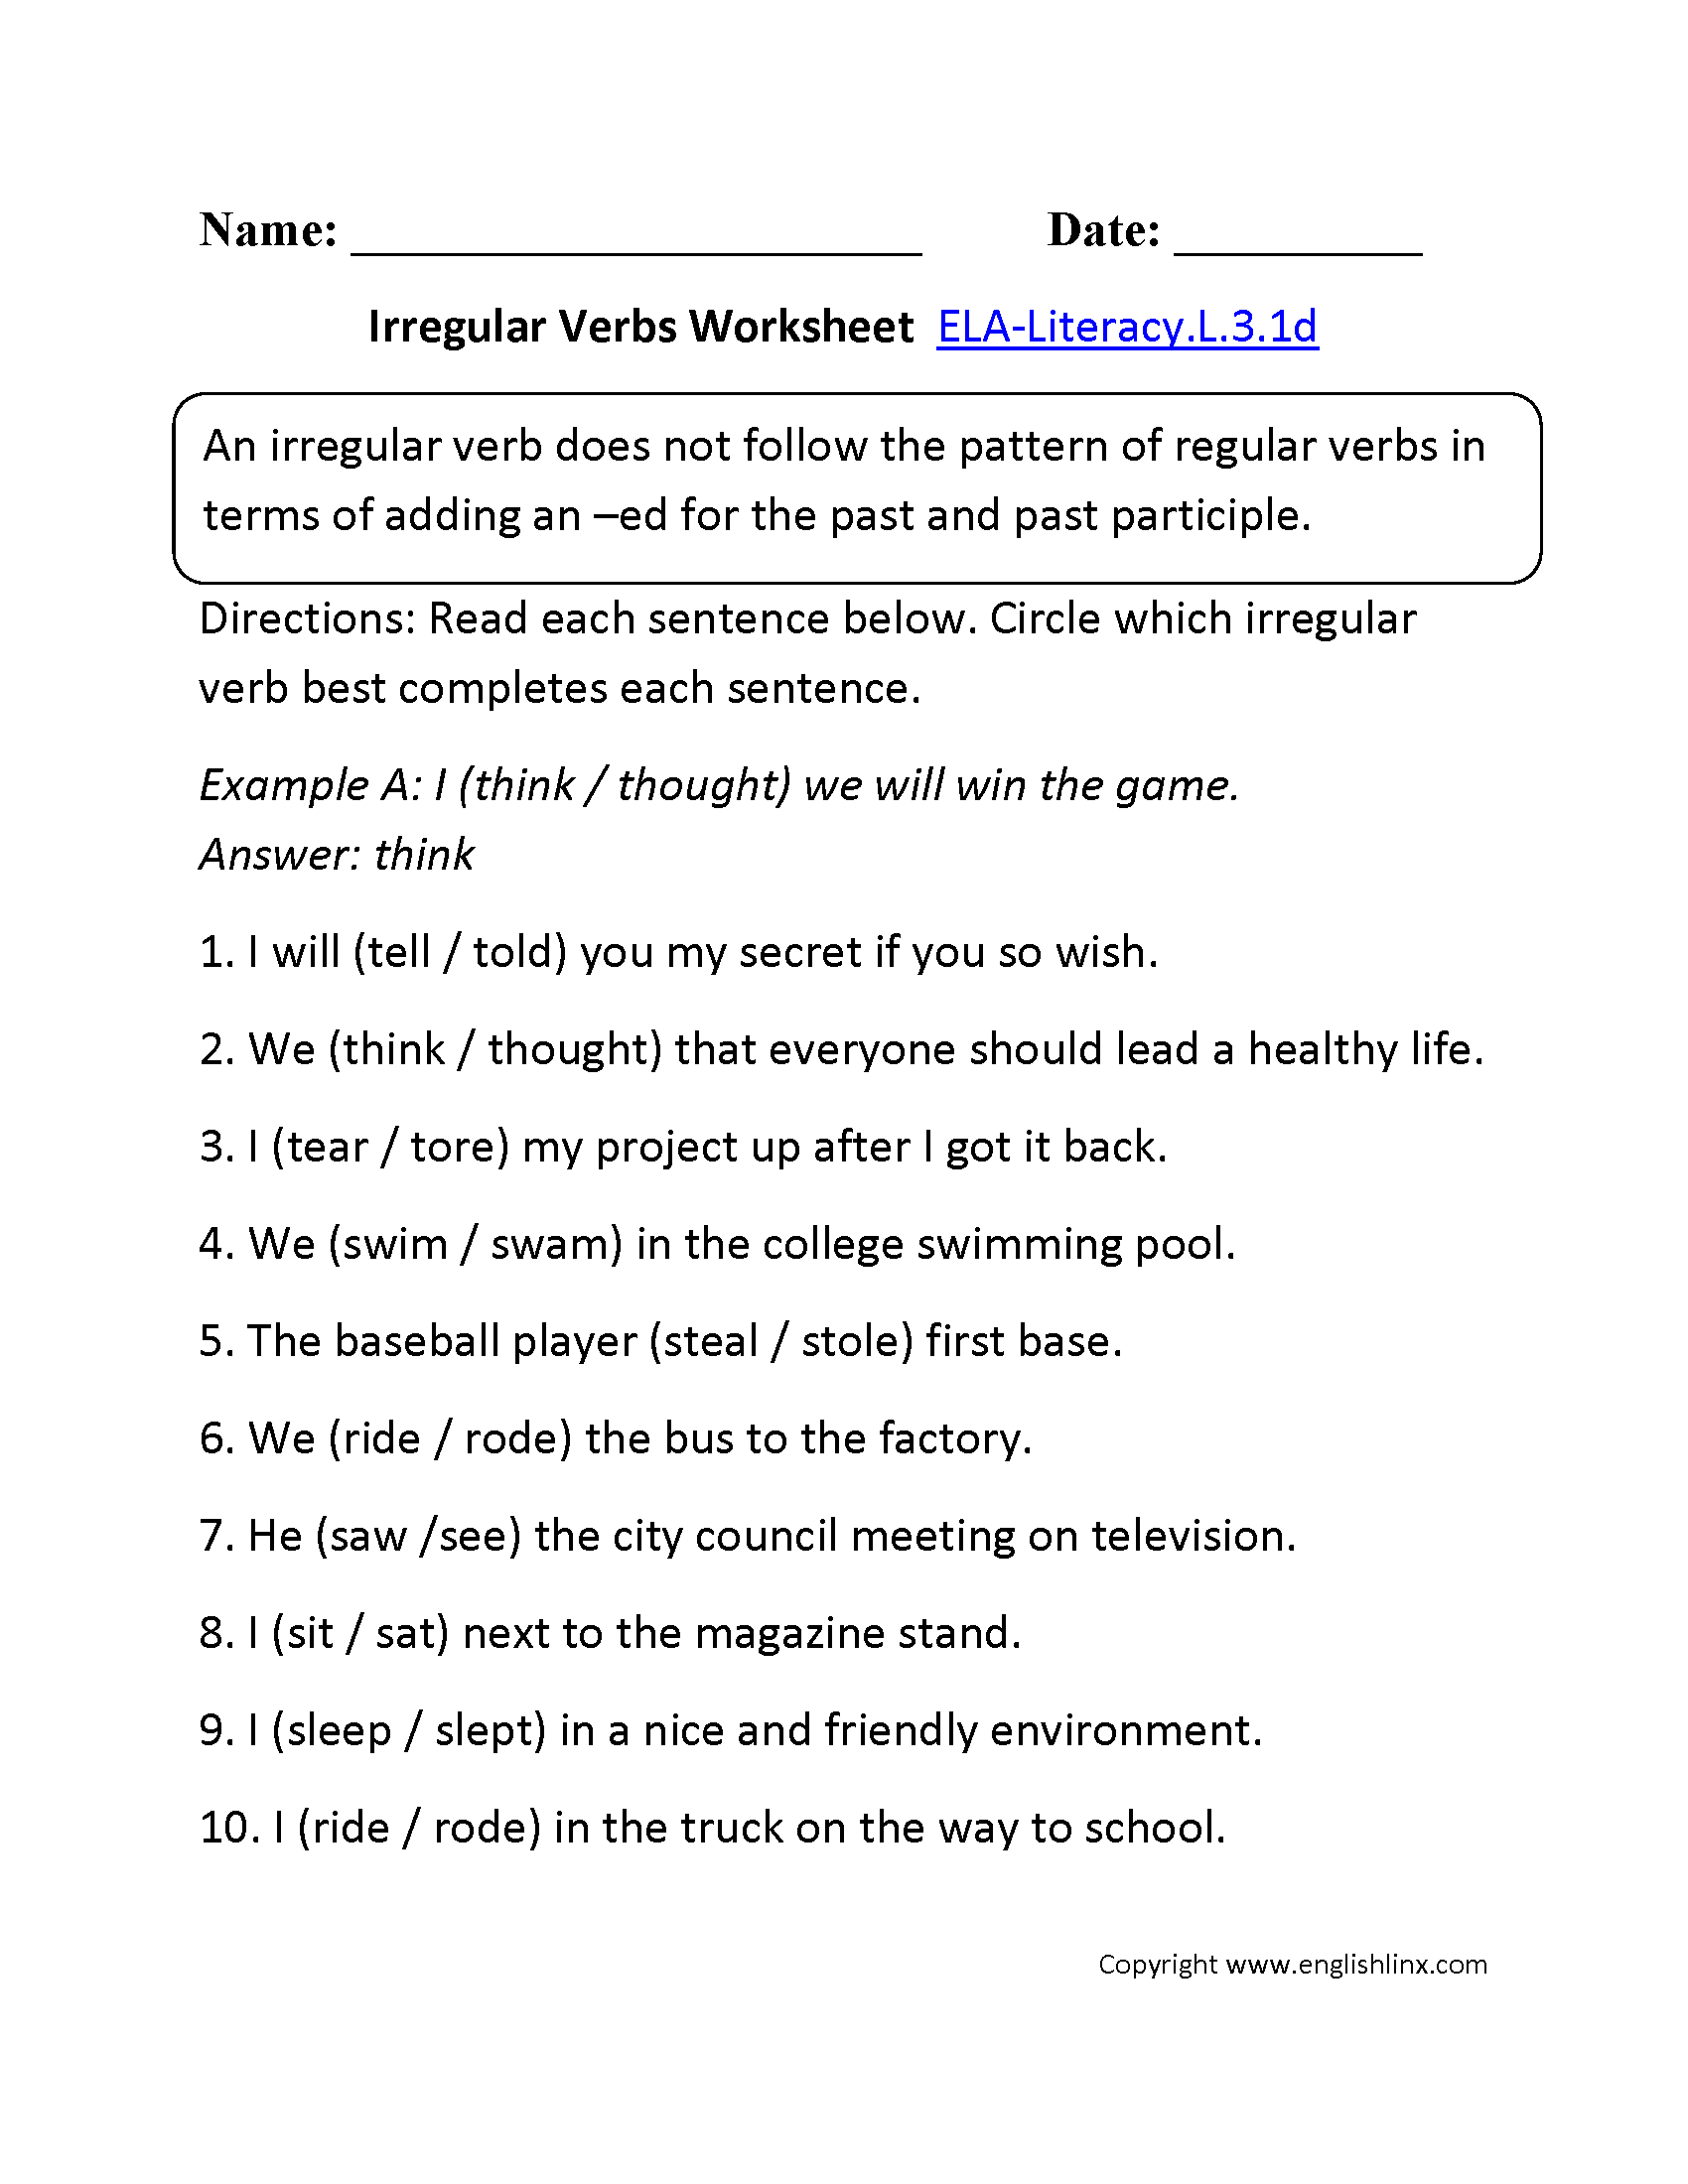 Worksheets Verb Worksheet irregular verbs worksheet 1 ela literacy l 3 1d language english worksheets that are aligned to the grade common core standards for language